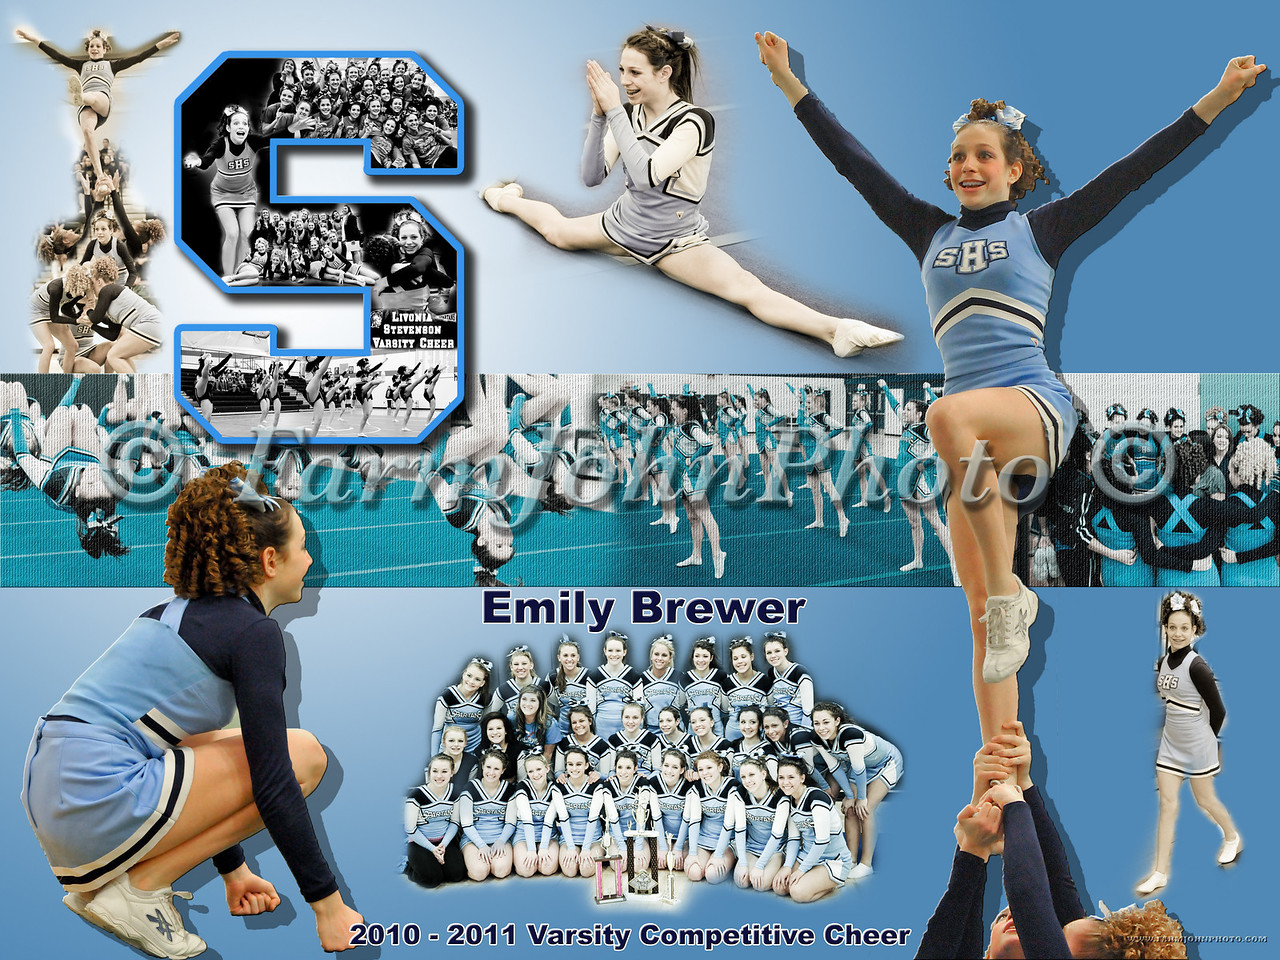 Emily Brewer 24 x 18 Format Proof 1